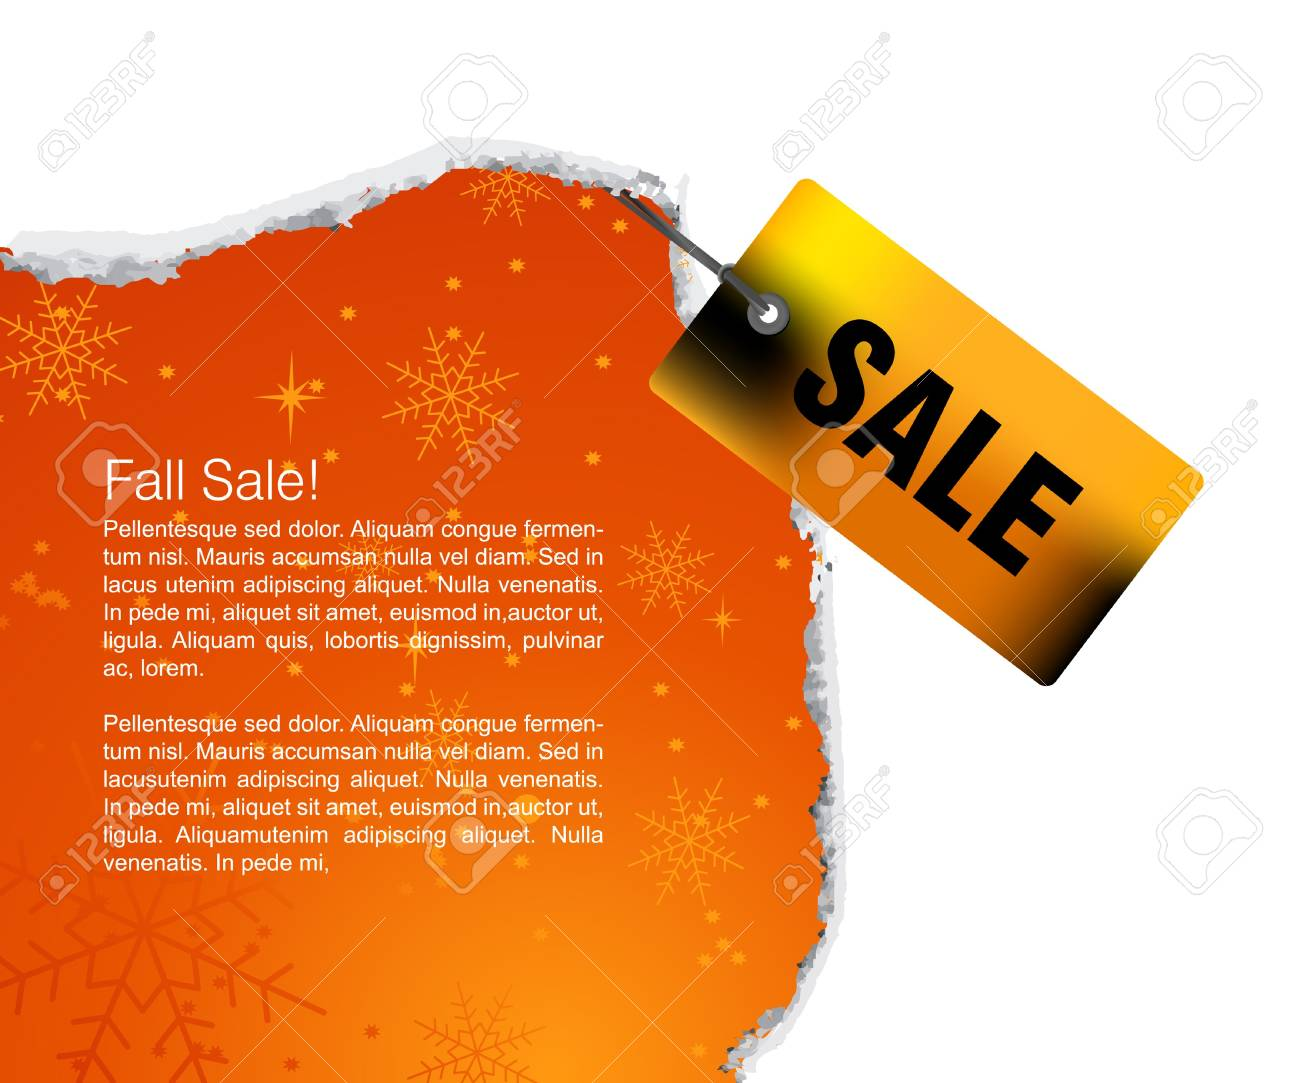 Sales and discount concept Illustration Stock Vector - 7866503